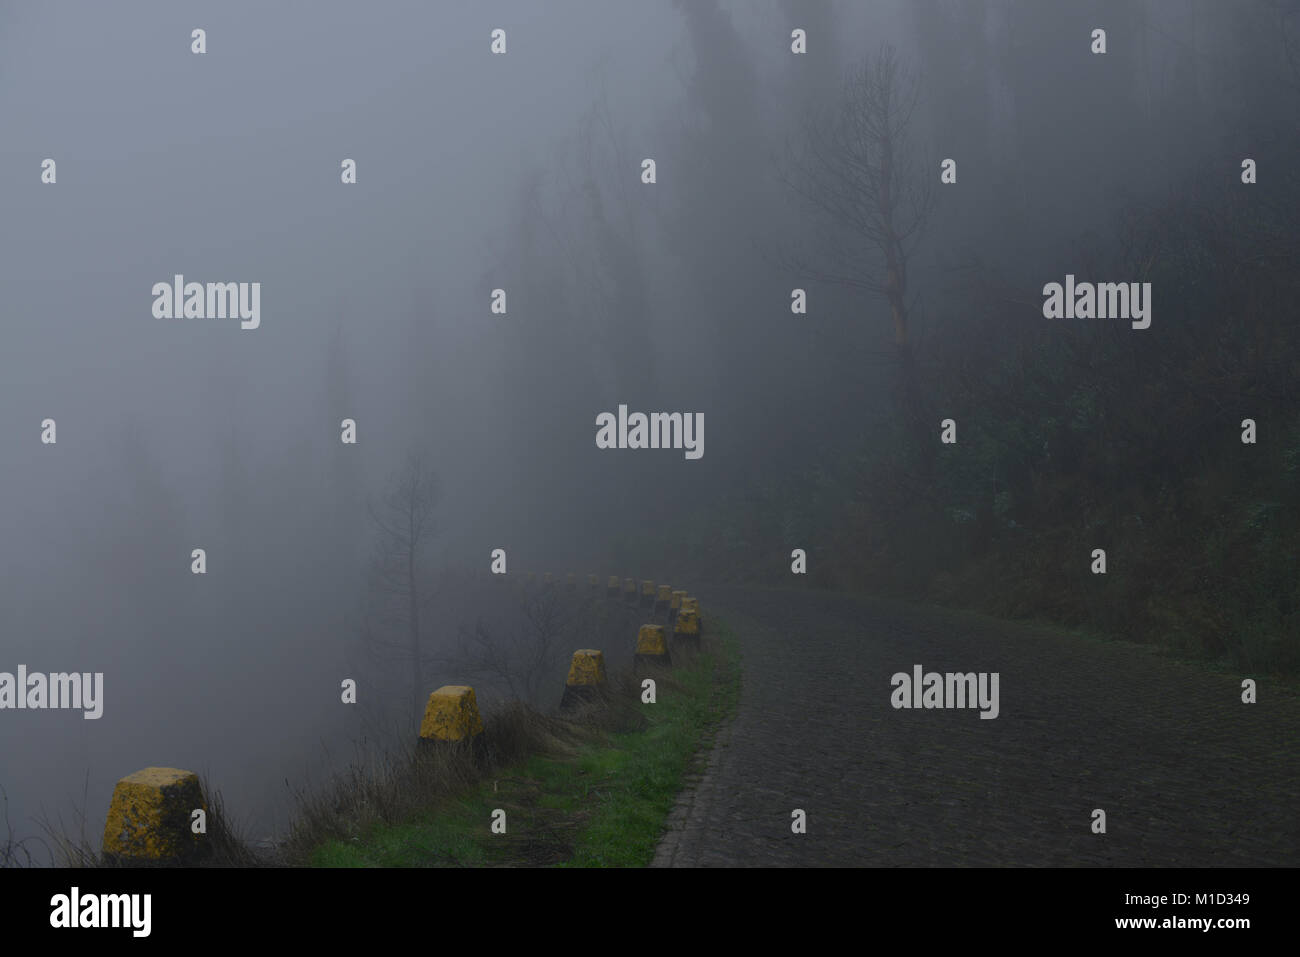 Fog, Mountain Road, Central Mountains, Madeira, Portugal, Nebel, Bergstrasse, Zentralgebirge - Stock Image